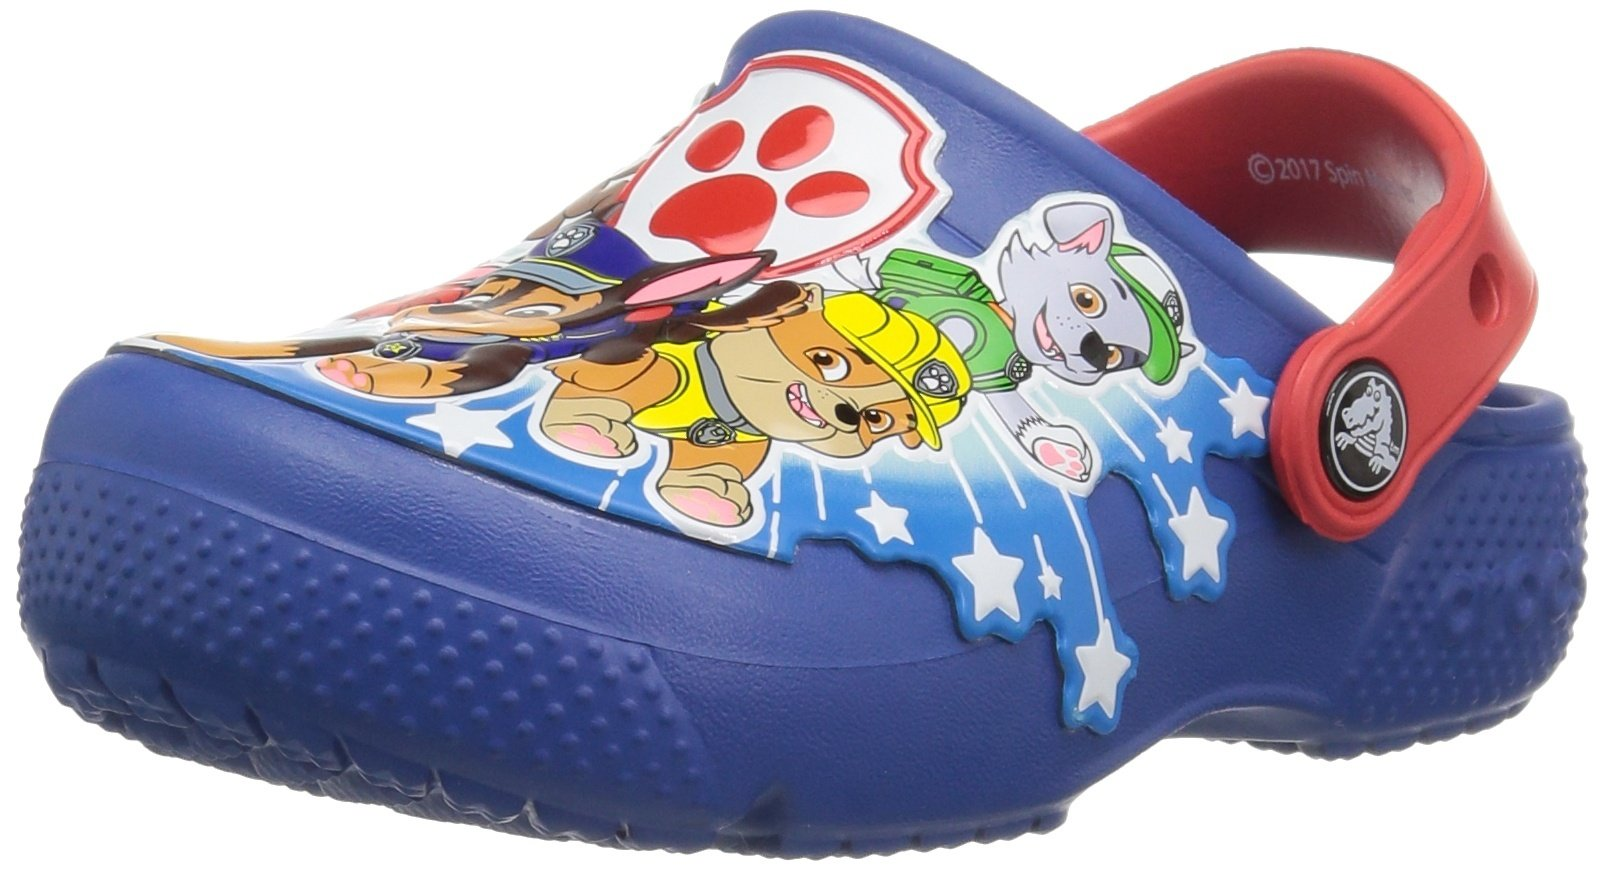 Crocs Boys' funlab Pawpatrol K Clog, Blue Jean, 12 M US Little Kid